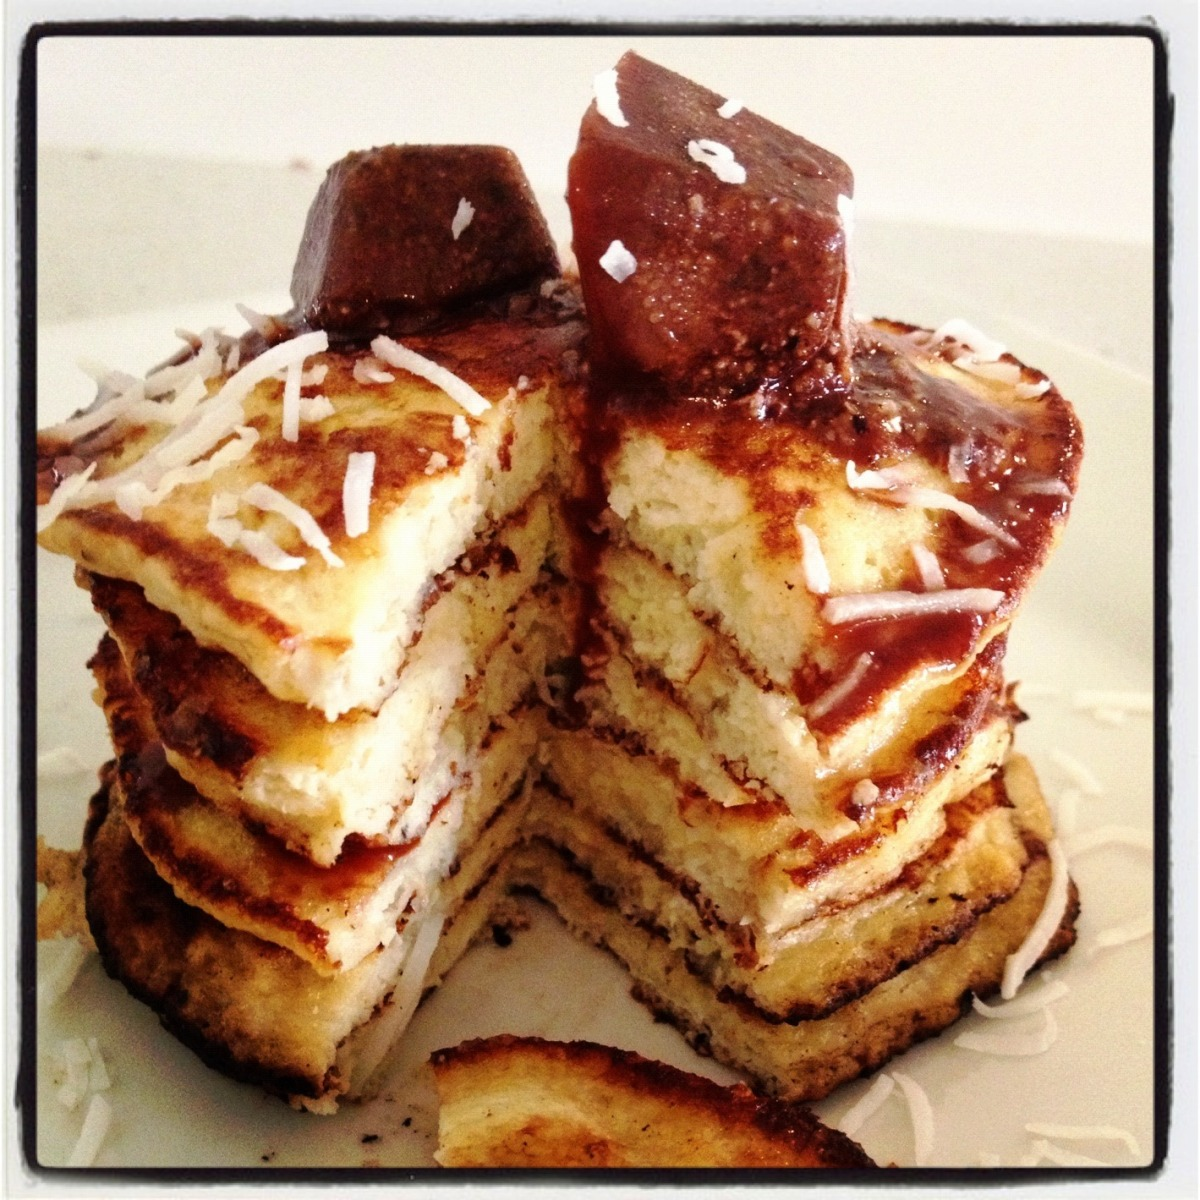 Banana nut pancakes with chocolate and coconut